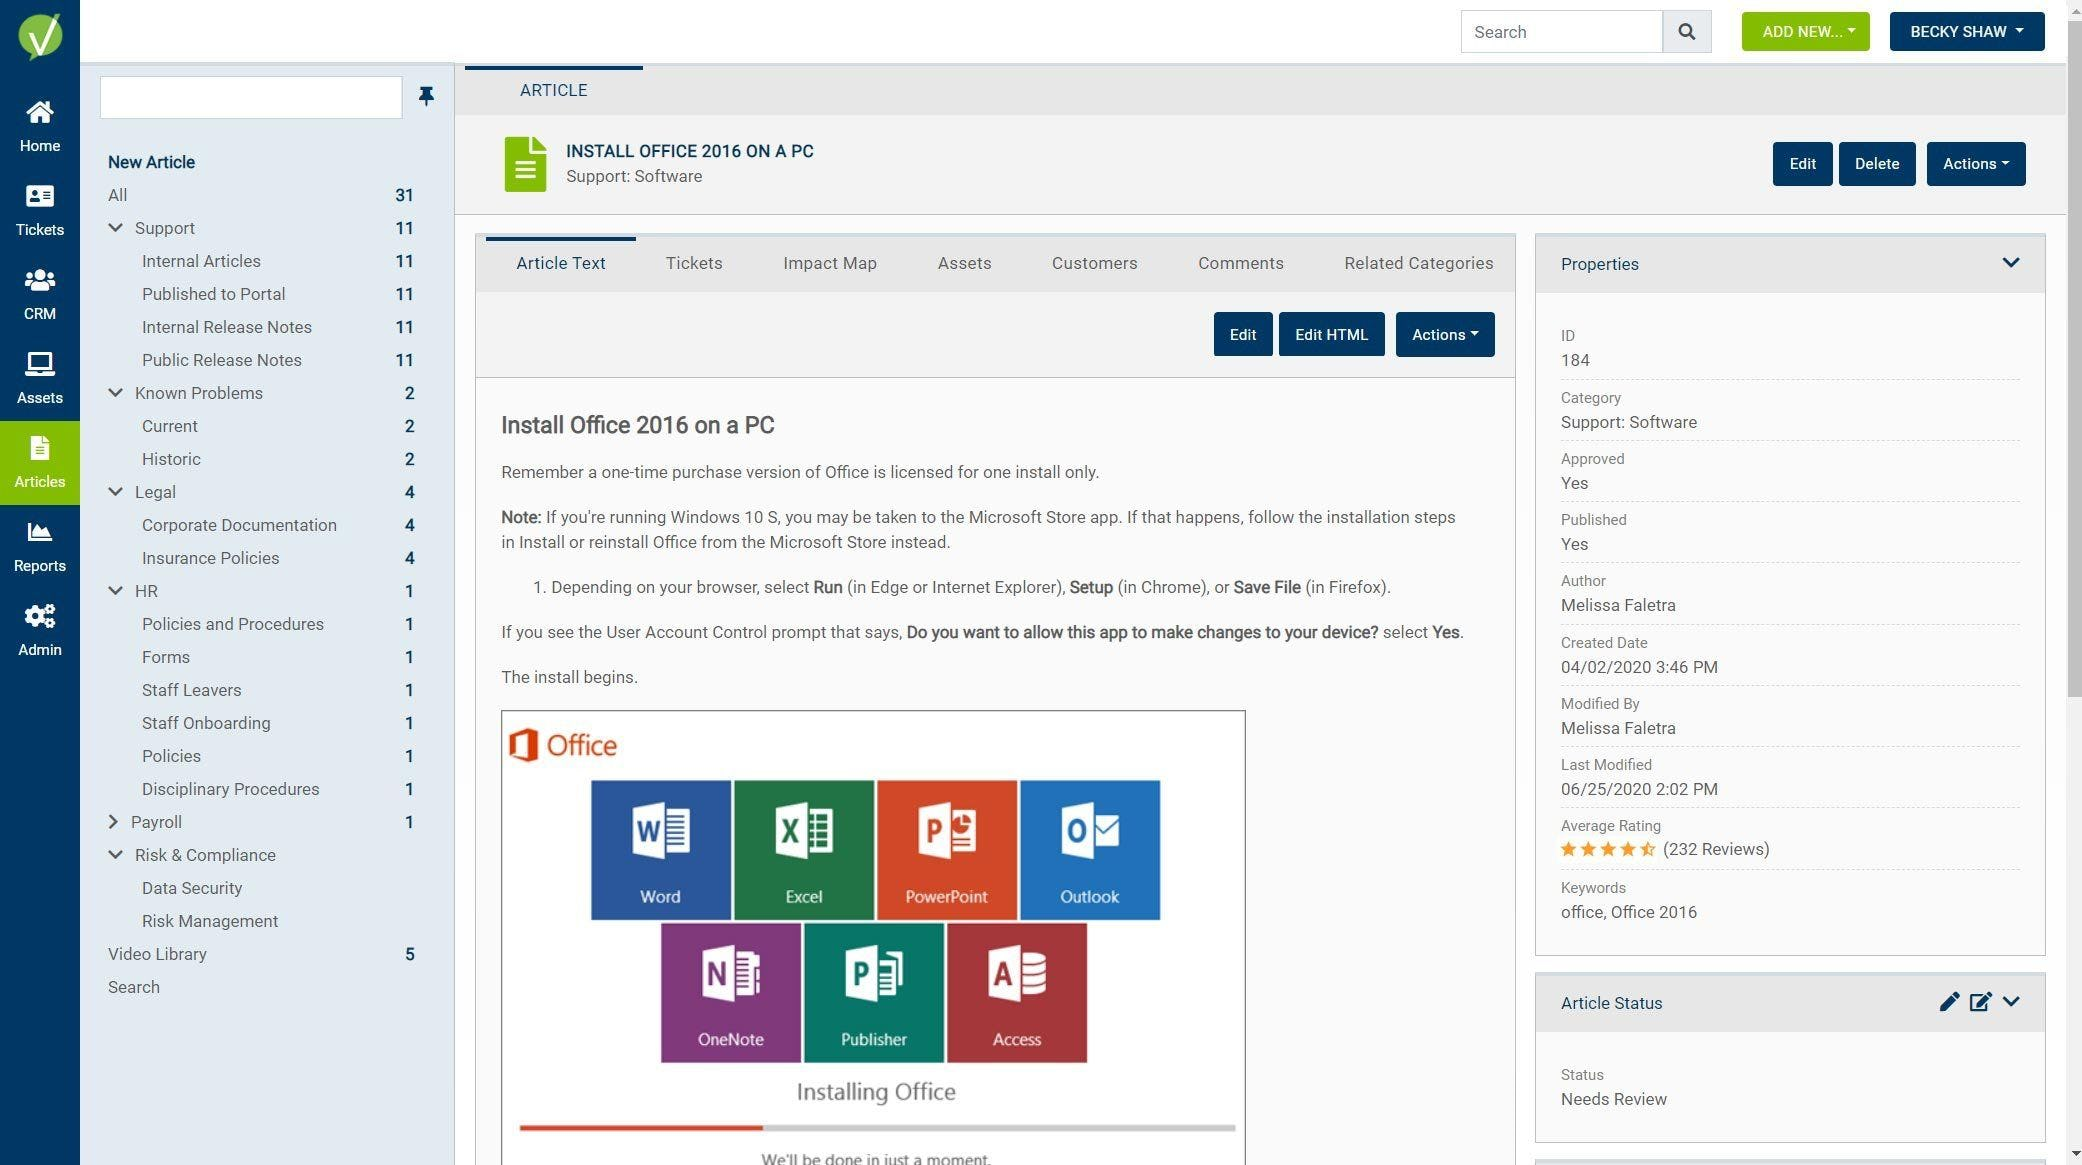 Vivantio Software - Knowledge Management. Can be used internally, as well as published to the customer Self Service portal.